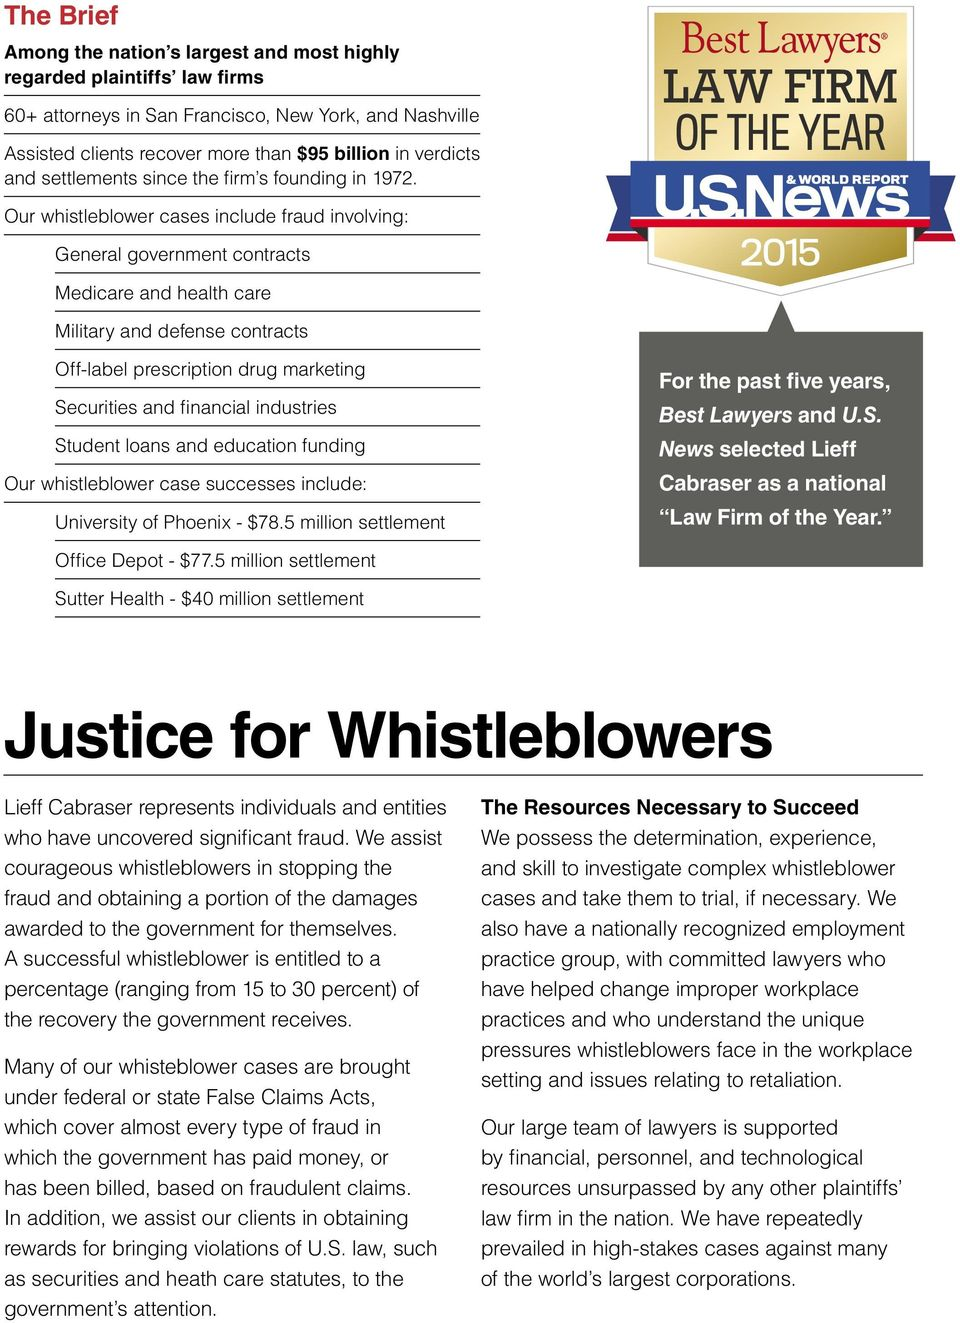 Our whistleblower cases include fraud involving: General government contracts Medicare and health care Military and defense contracts Off-label prescription drug marketing Securities and financial